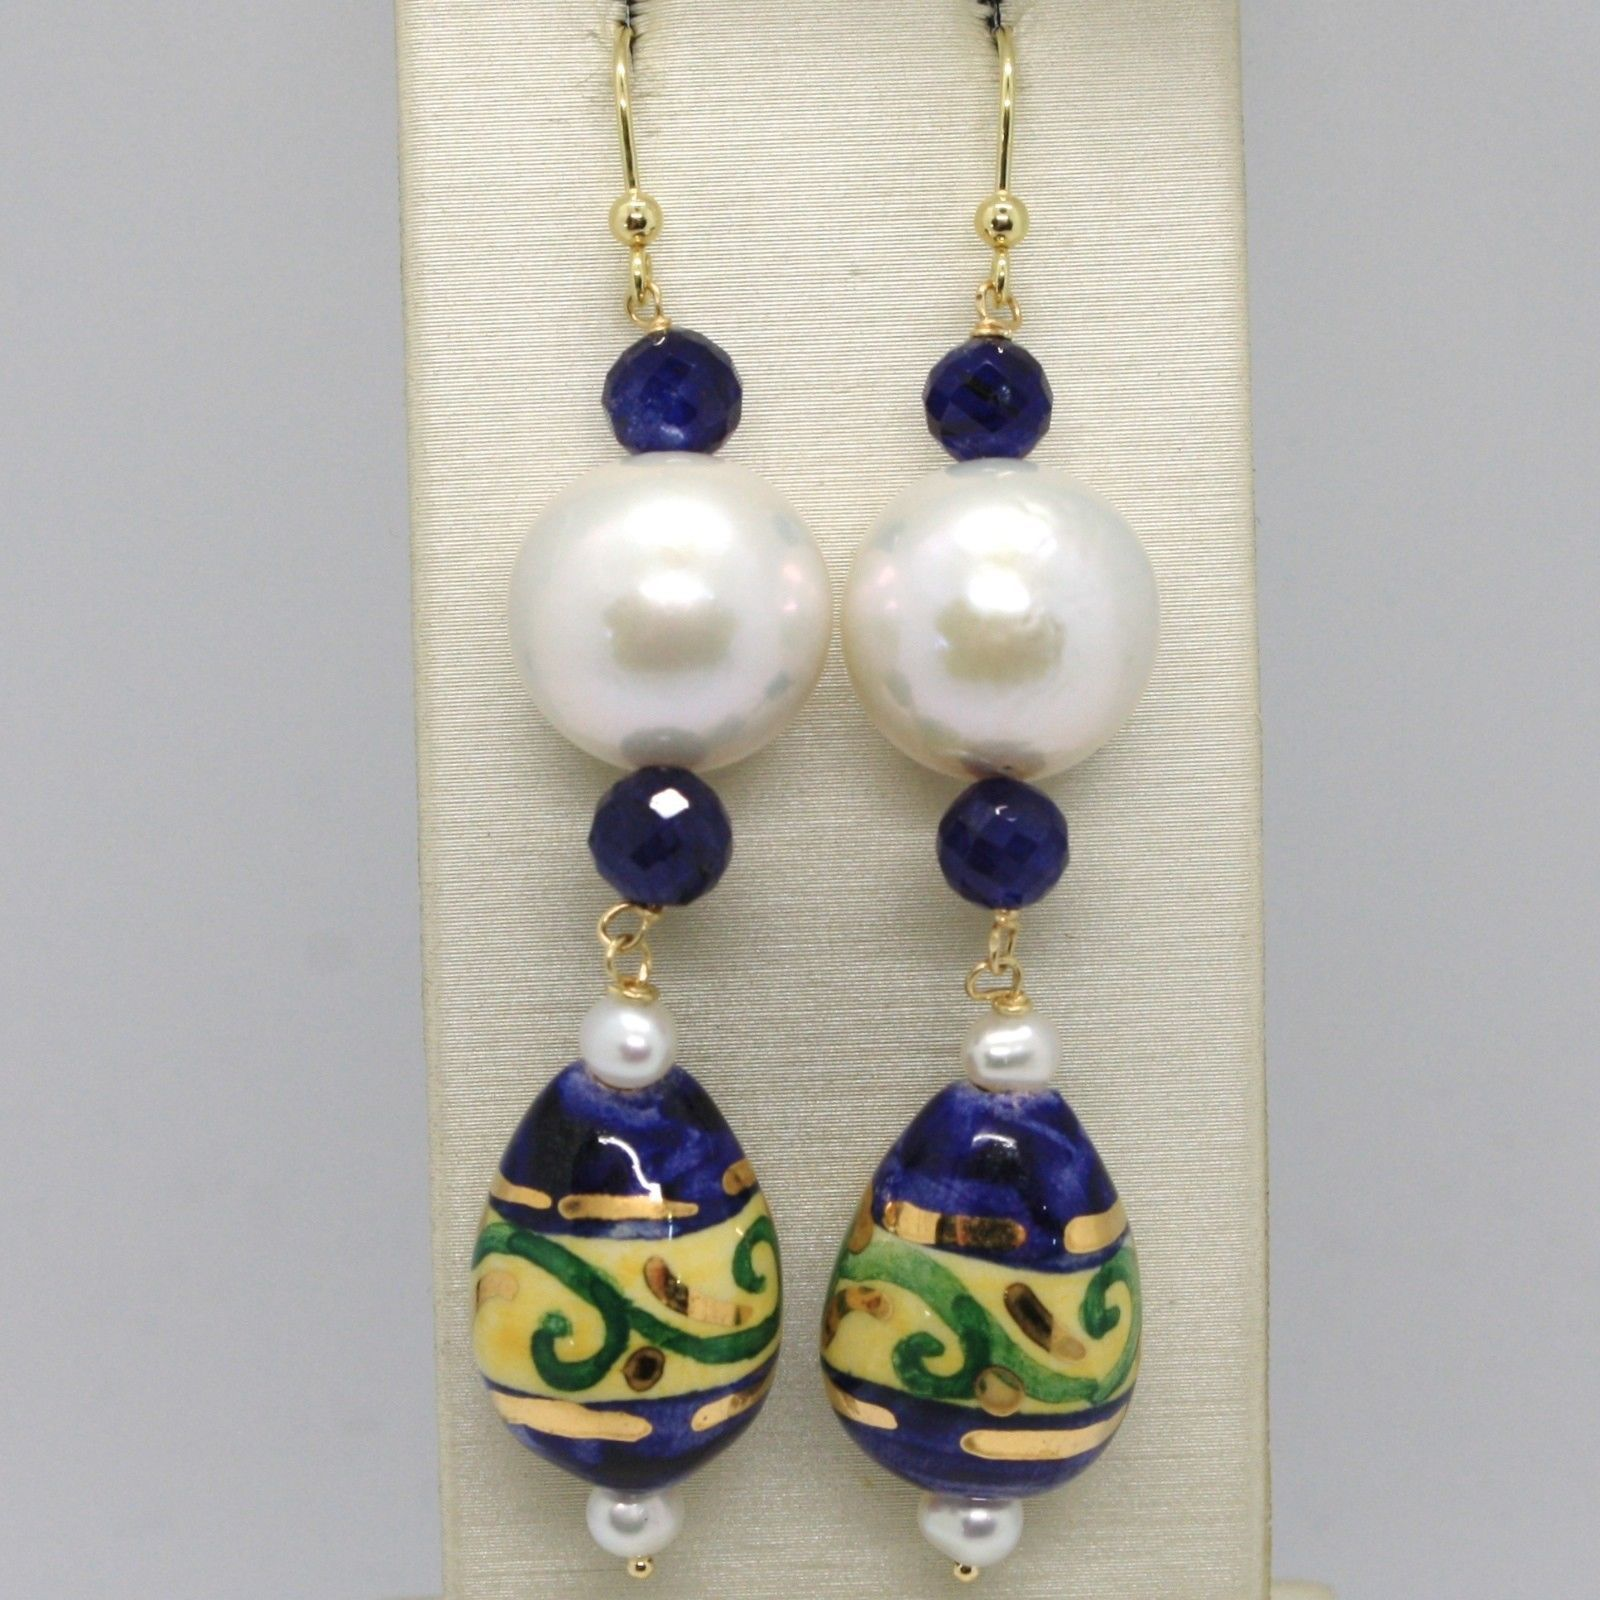 YELLOW GOLD EARRINGS 18K PEARLS SAPPHIRES AND DROP HAND-PAINTED MADE IN ITALY